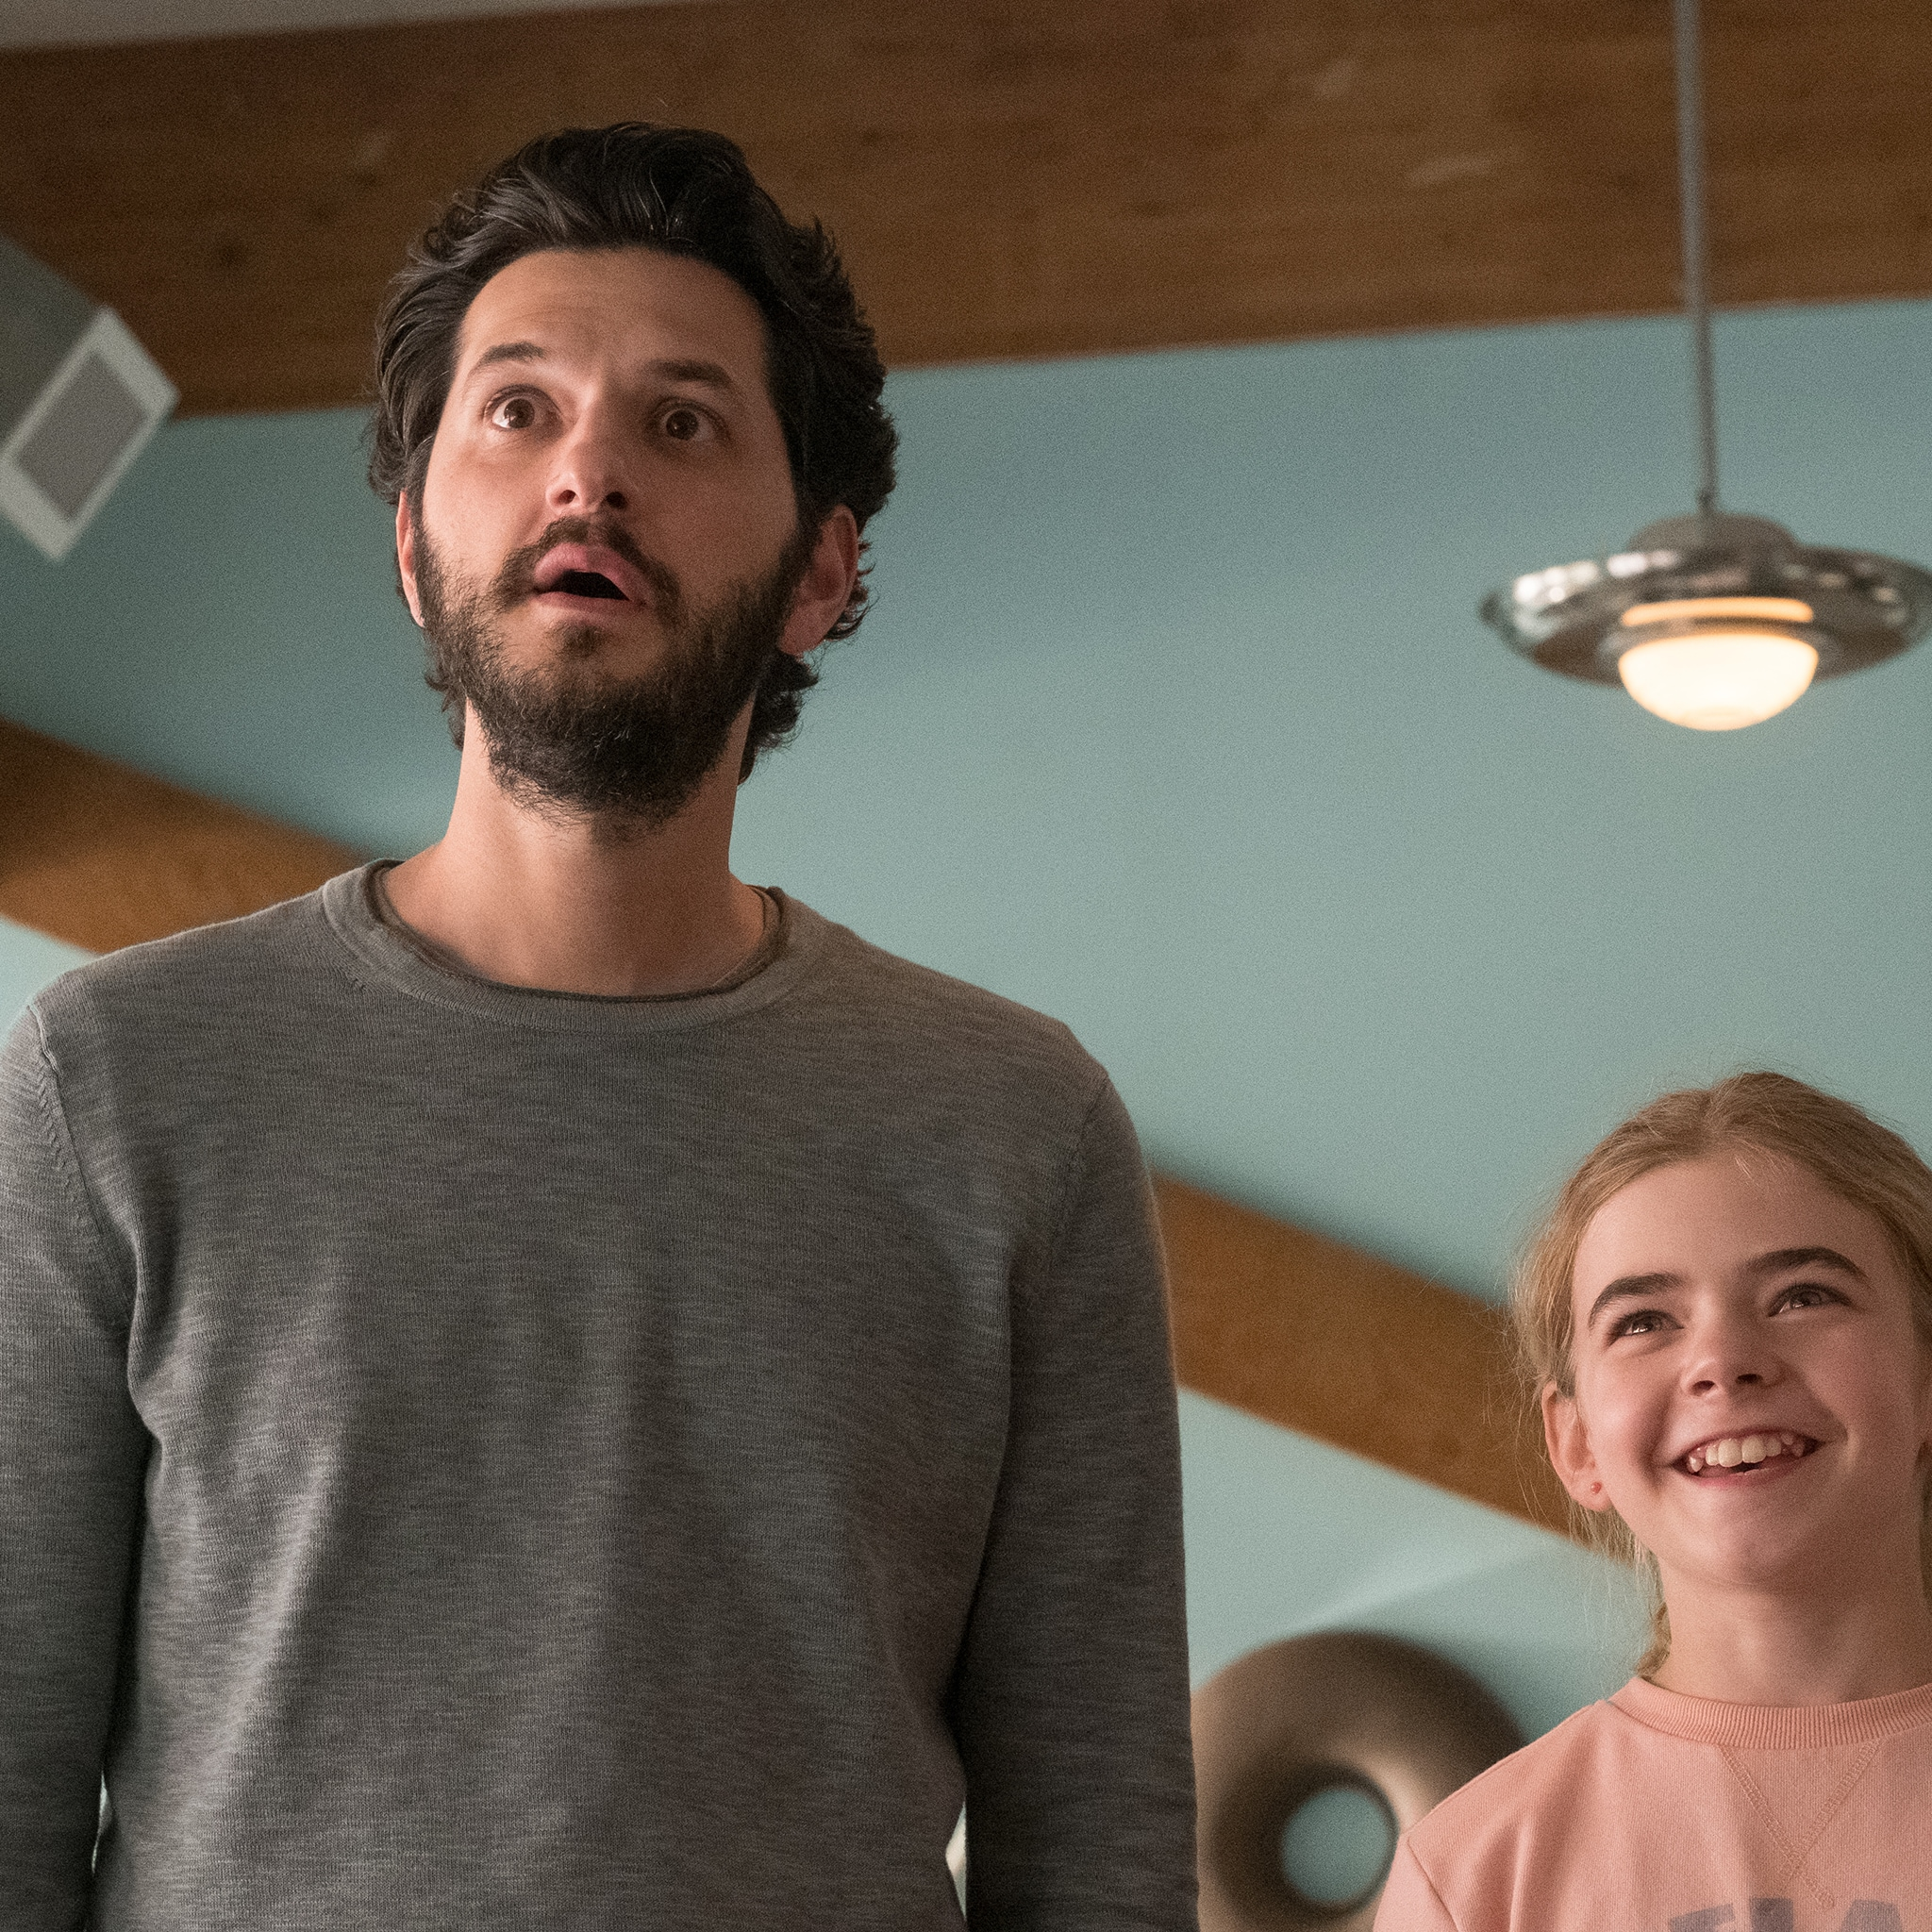 Disney+'s Flora & Ulysses Star Ben Schwartz Talks Improv, Comic Books, Disney Ducks, and More